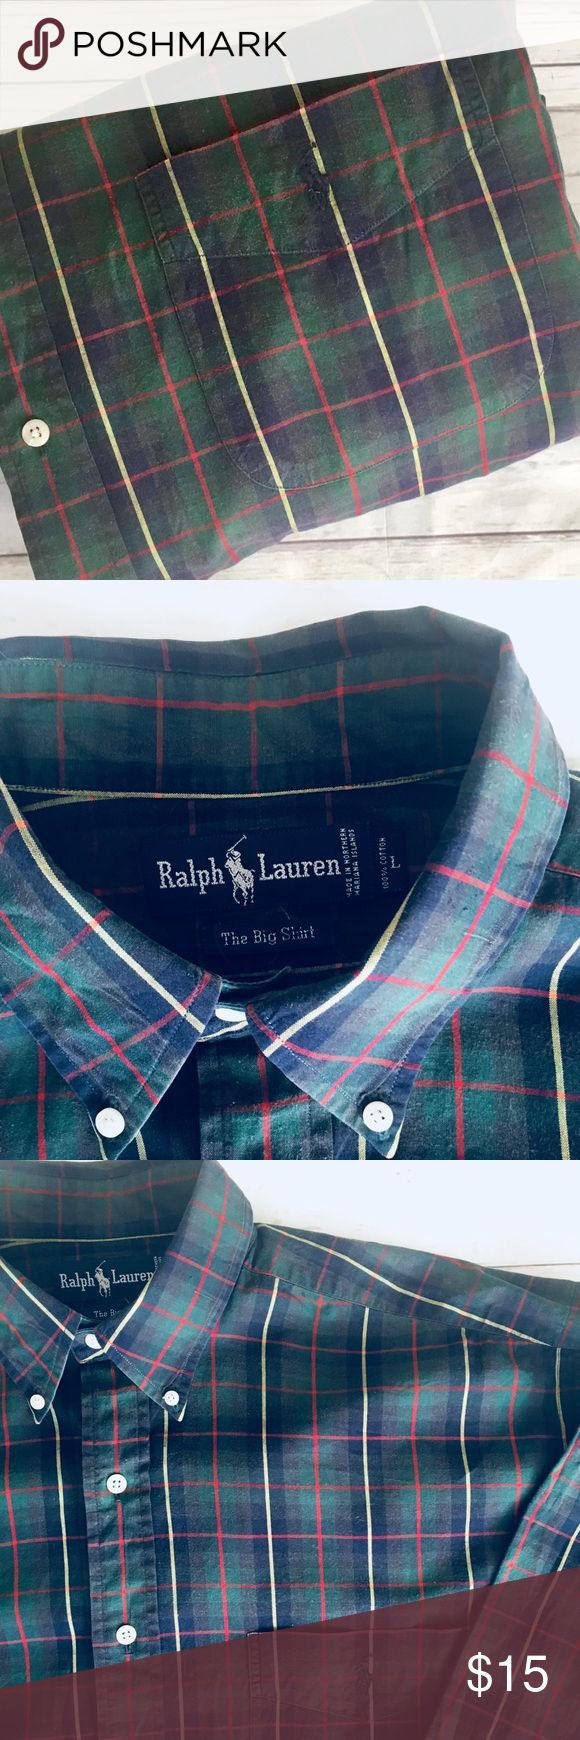 """🐎SALE 🐎1/$20•2/$35•3/$50•🐎POLO• RALPH• LAUREN• 🐎SALE 🐎1/$20•2/$35•3/$50•🐎POLO• RALPH• LAUREN•  🇺🇸Military, police & fire men & women receive 10% discount🇺🇸    men's  long sleeve 100% cotton oxford shirt•  L BIG SHIRT per tag: running large~ see measurements below• Signature pony•   GUC• I see no flaws•    shoulder: 22"""" Chest: 29"""" (armpit-armpit) Sleeve: 35"""" Length: 34""""  🐎CHECK BACK EACH WEEK FOR NEW POLO LISTINGS🐎 Polo by Ralph Lauren Shirts Casual Button Down Shirts"""